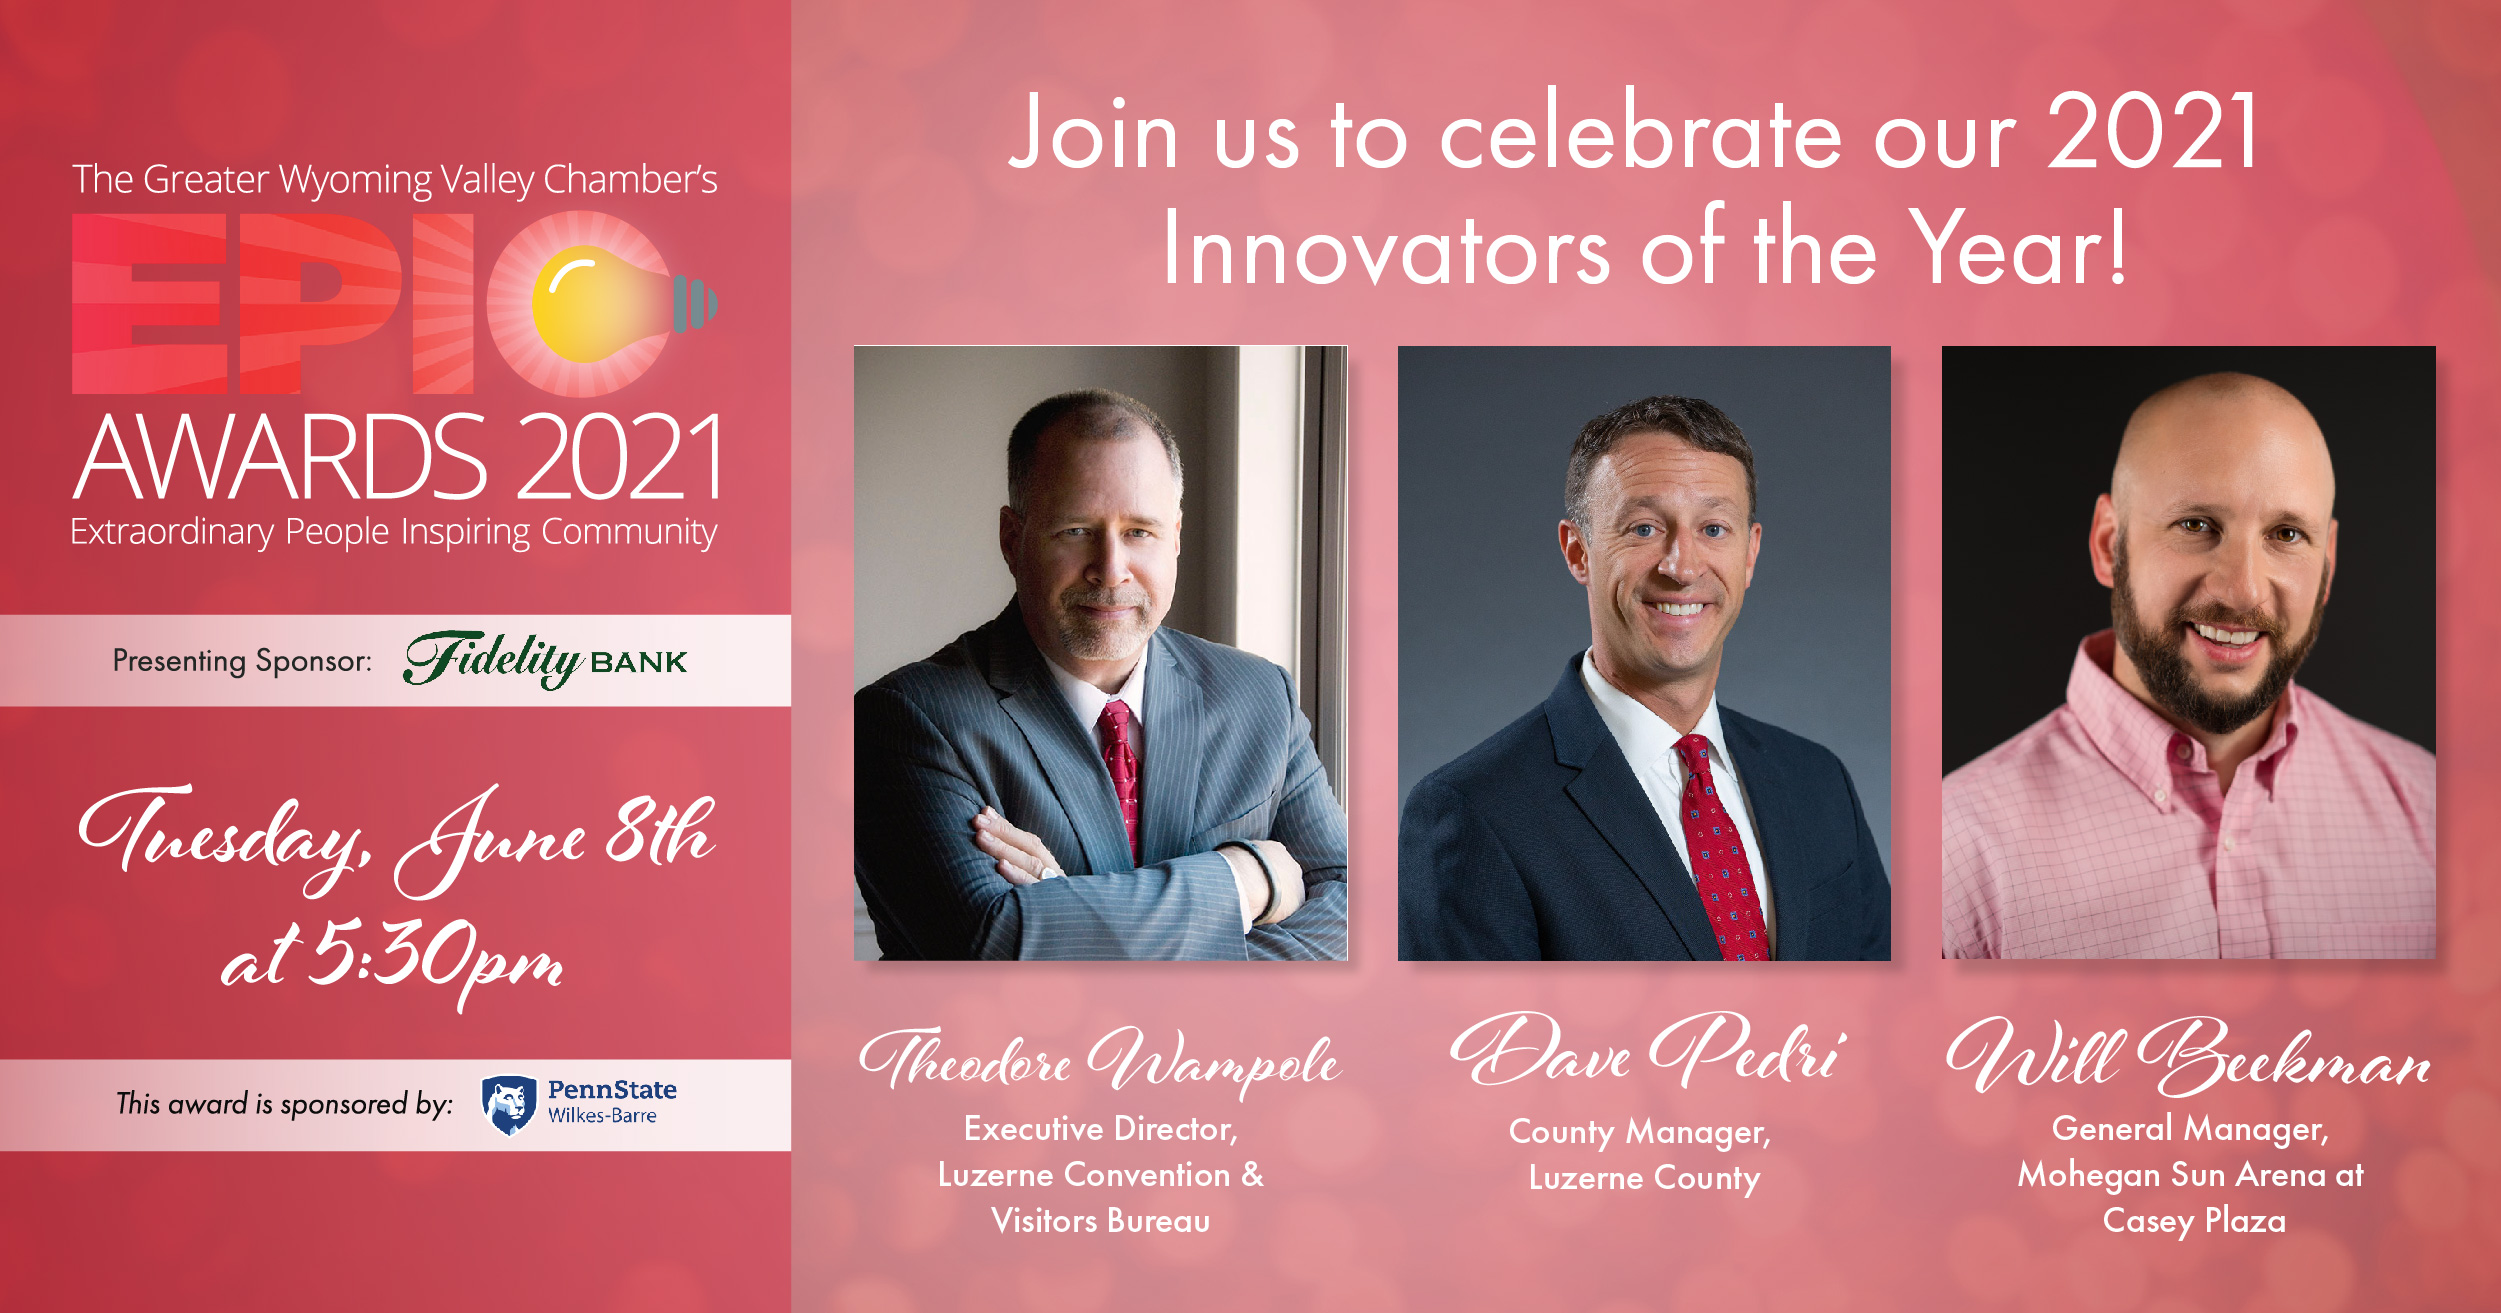 Image for Meet the 2021 Innovators of the Year: Theodore Wampole, Dave Pedri, and Will Beekman!